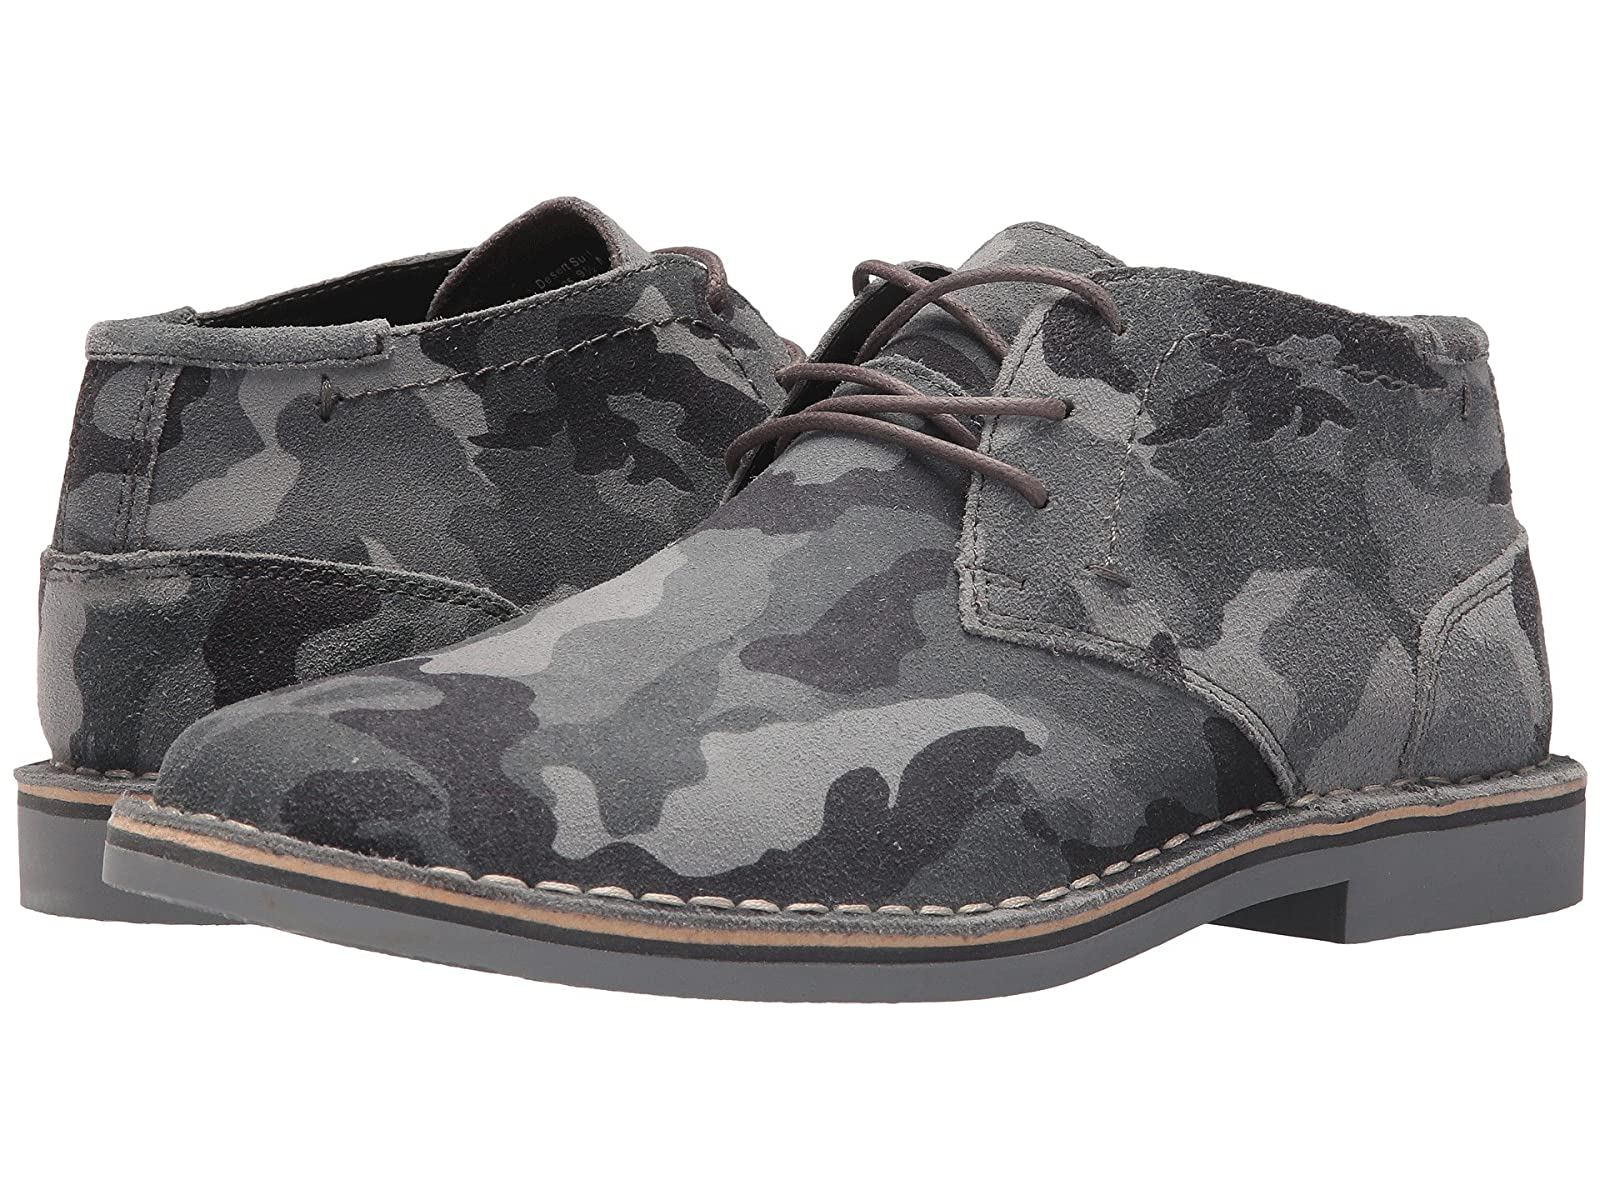 Kenneth Cole Reaction Desert SunAffordable and distinctive shoes